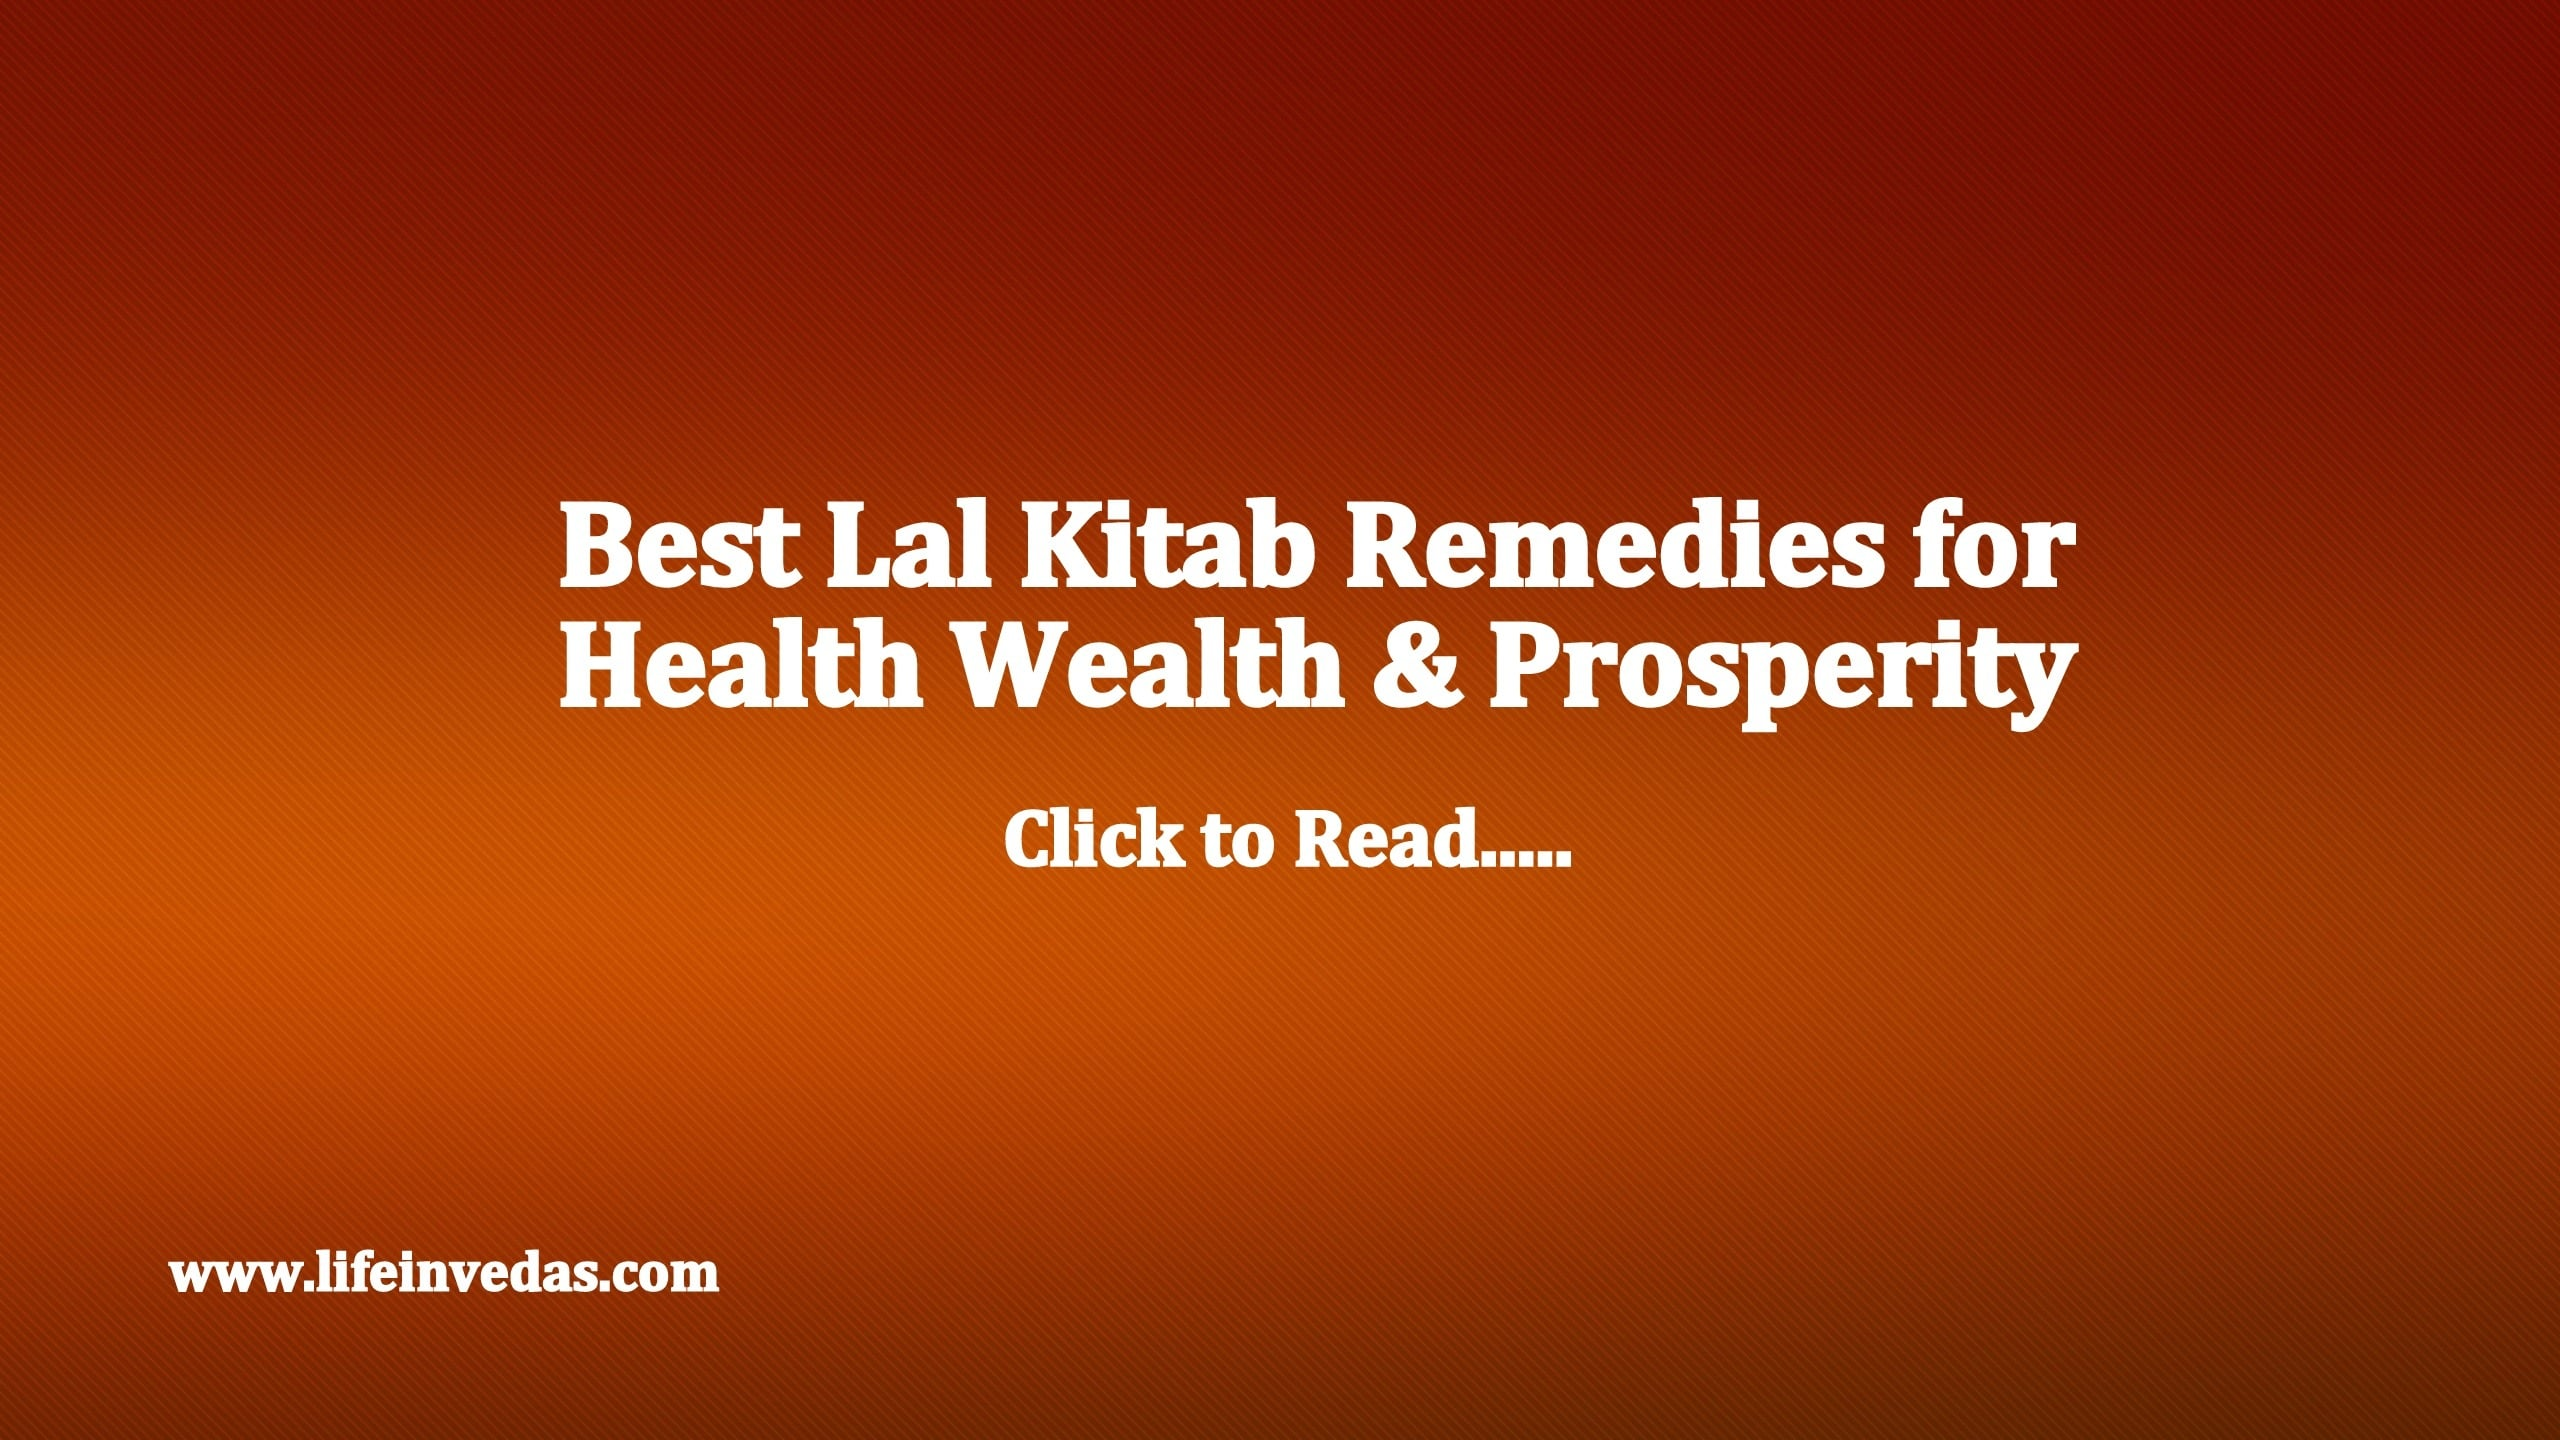 100 Lal Kitab Upay & Remedies for Health, Wealth Money